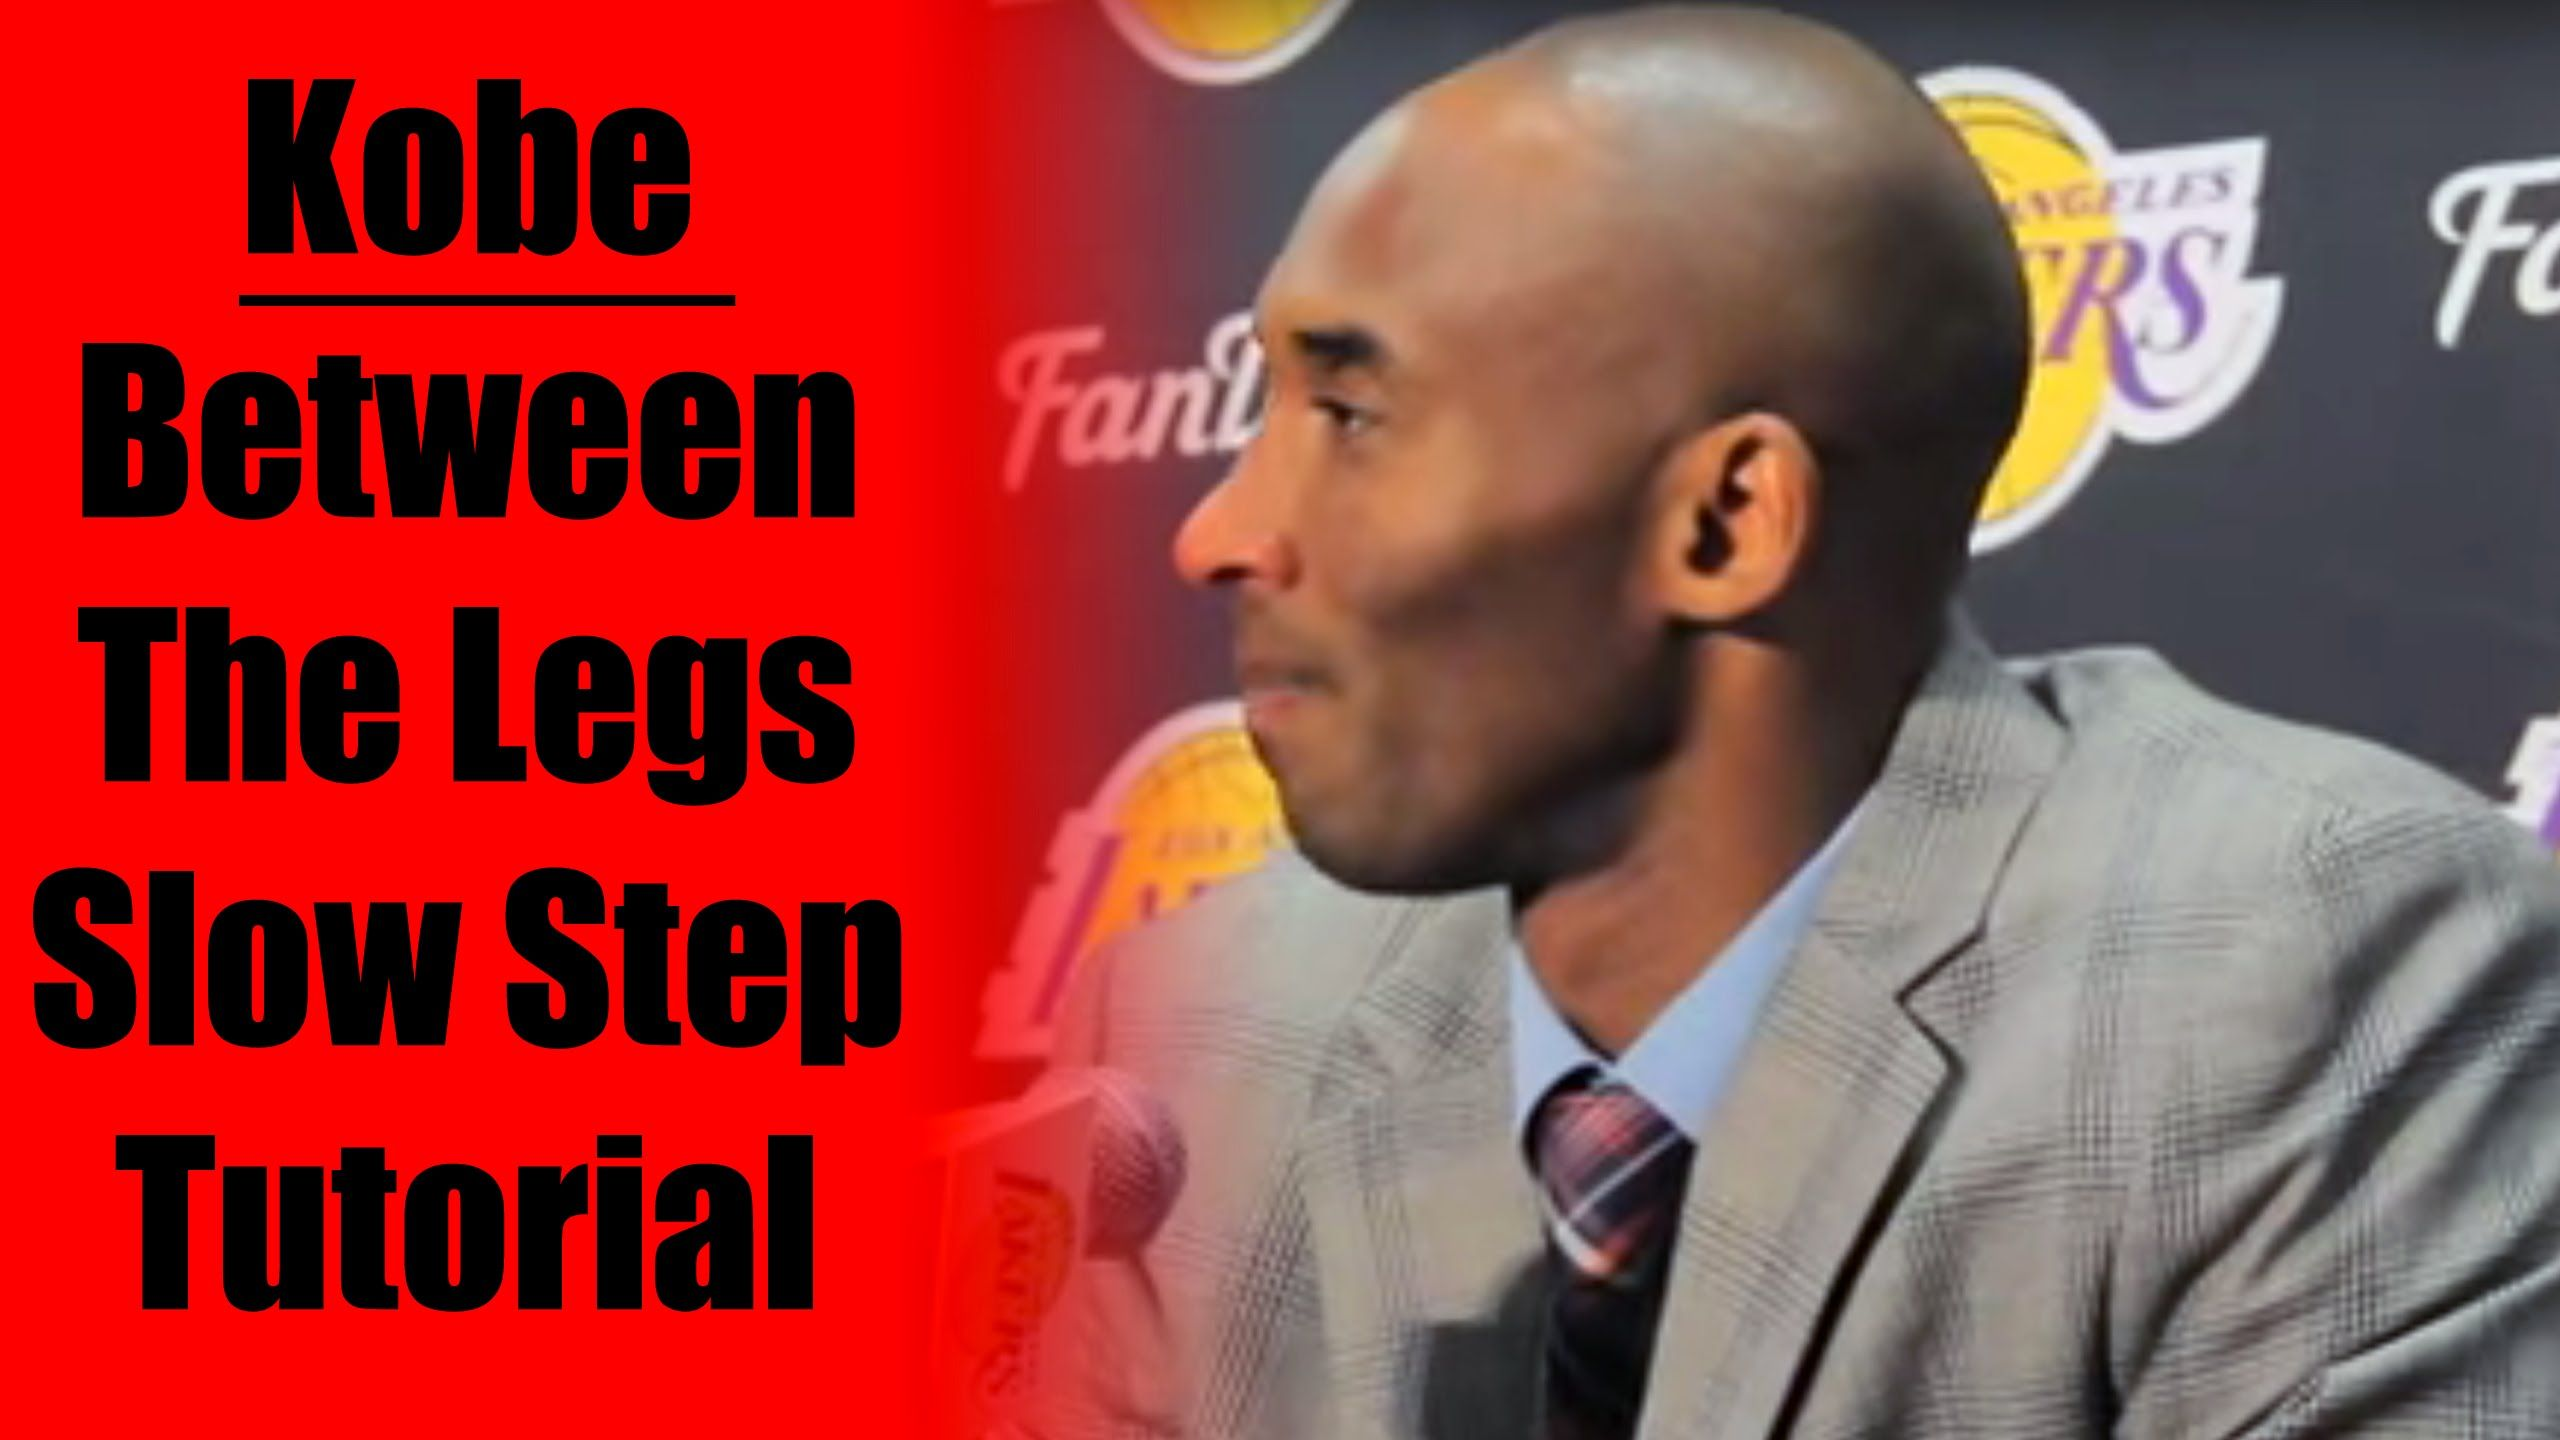 Basketball Moves Kobe Bryant Slow Step Between the Legs